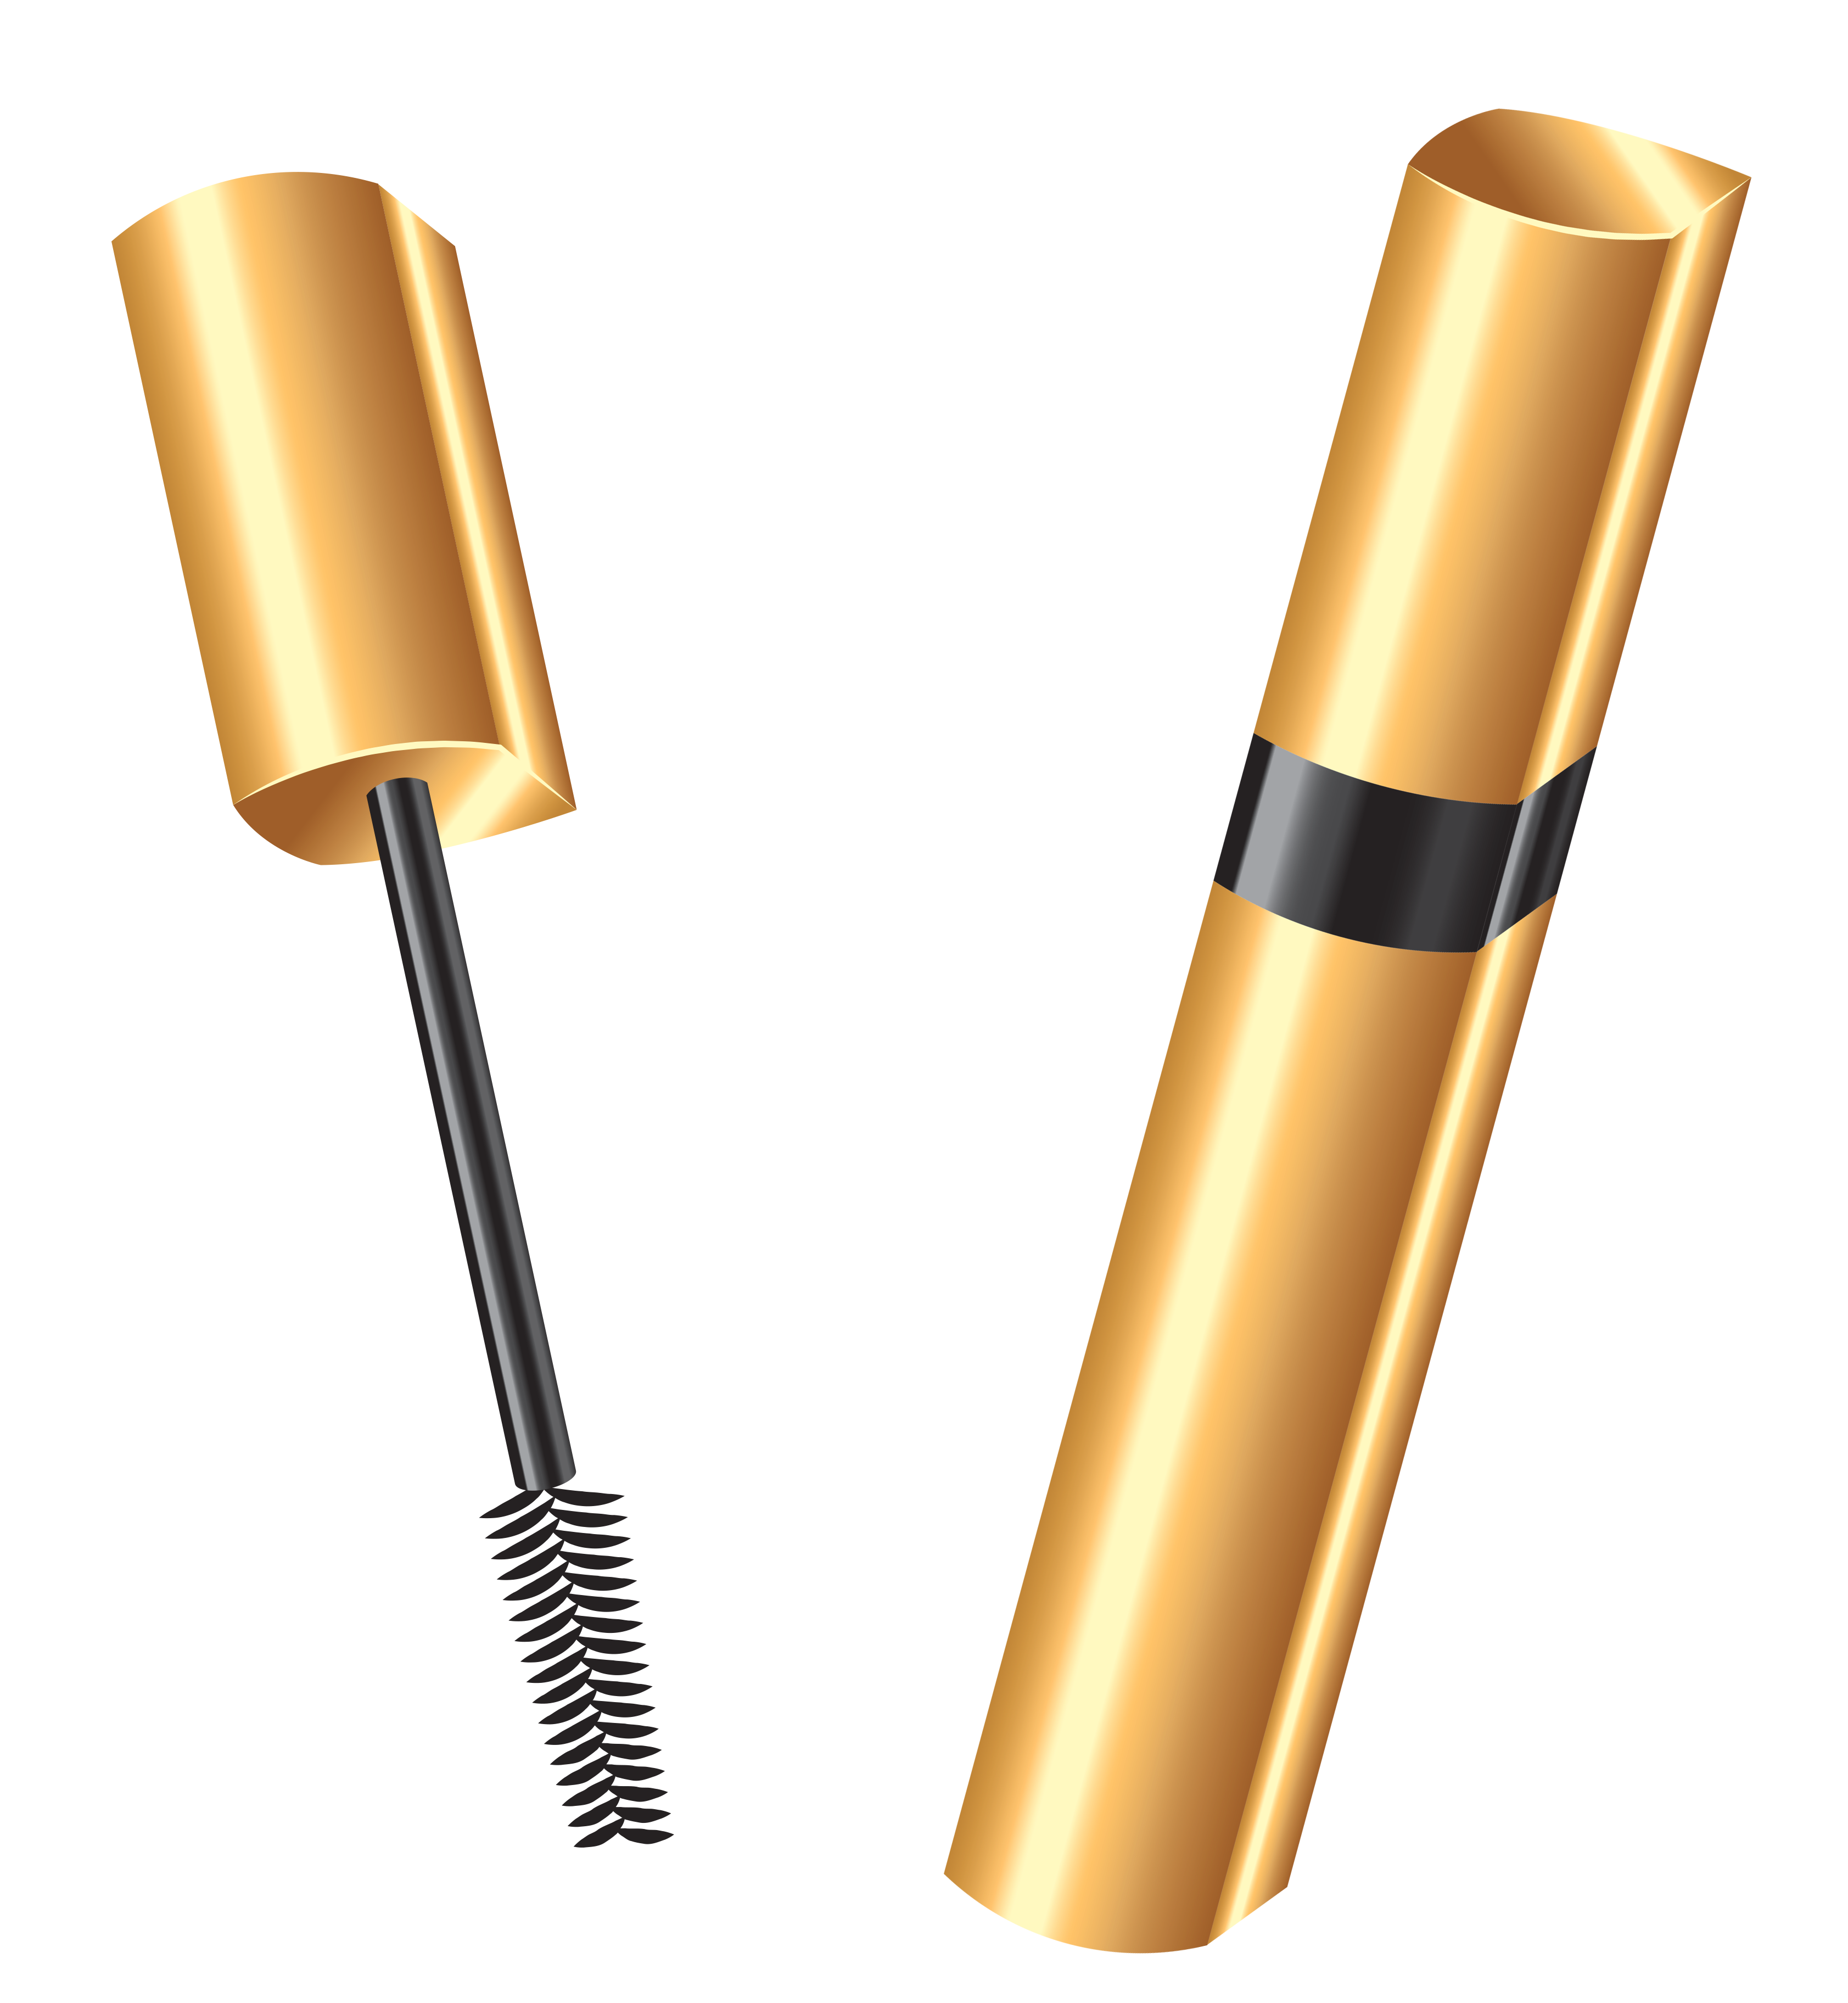 Makeup clipart png. Mascara picture gallery yopriceville